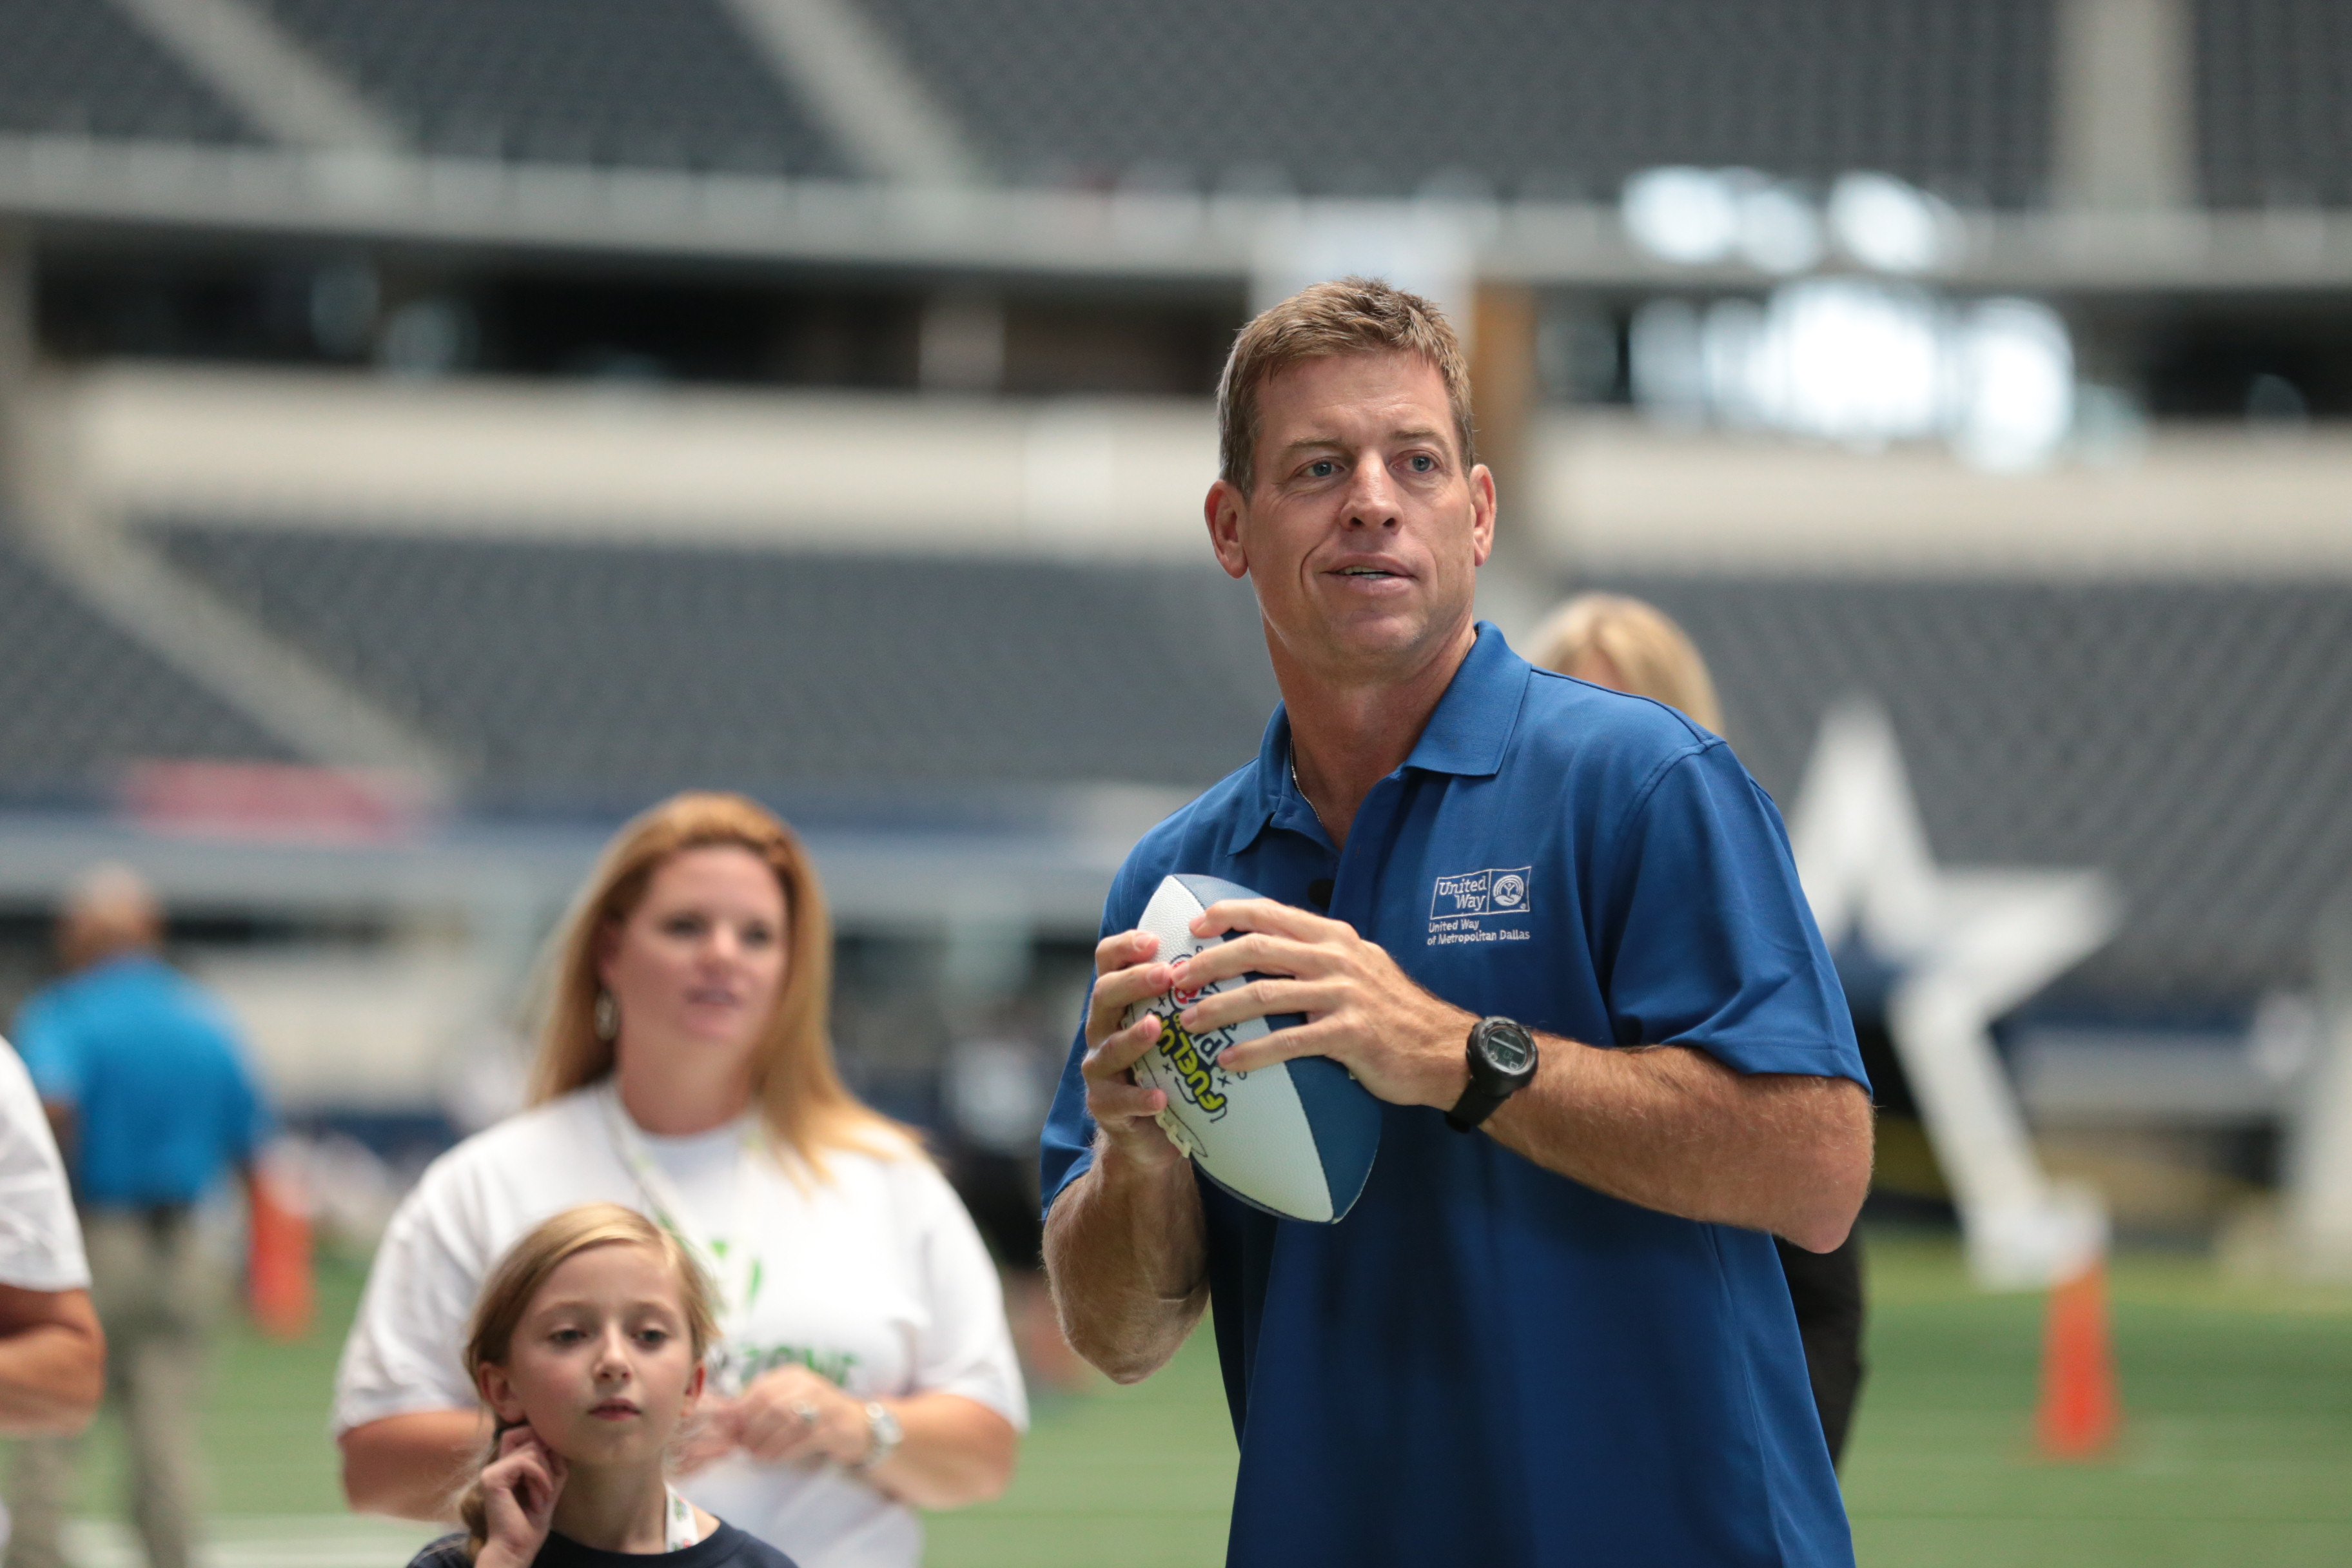 Former Cowboys QB Troy Aikman will lead the Healthy Zone Schools charge today at AT&T Stadium. (Photo courtesy United Way of Metropolitan Dallas)